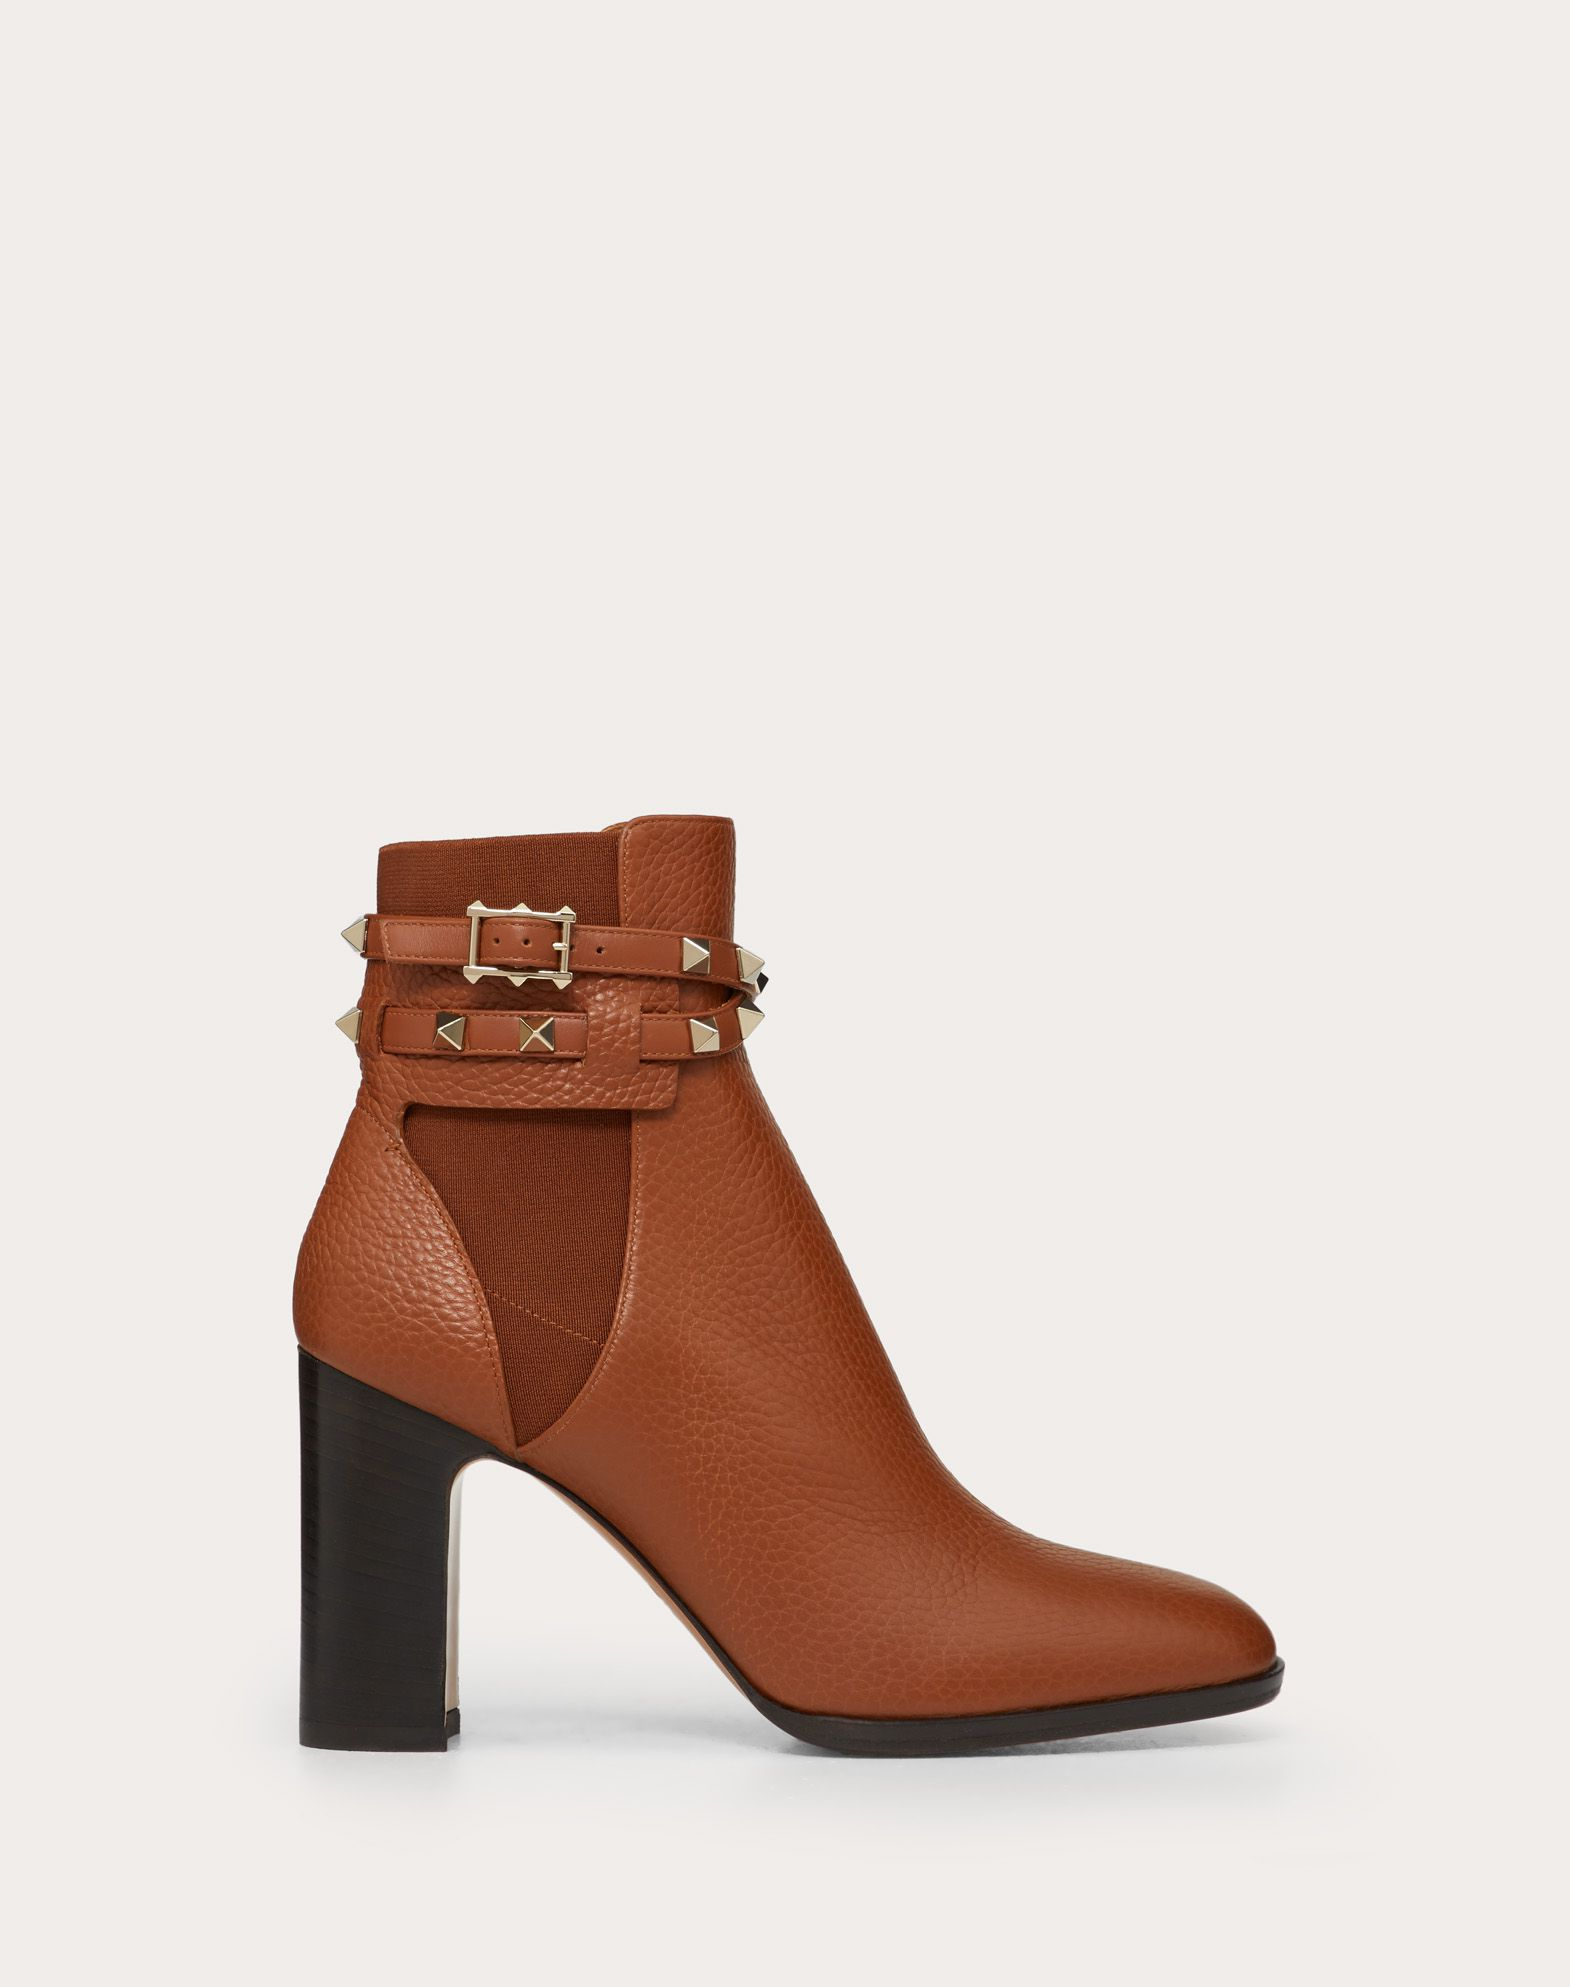 Rockstud Grainy Calfskin Leather Ankle Boot 90 mm